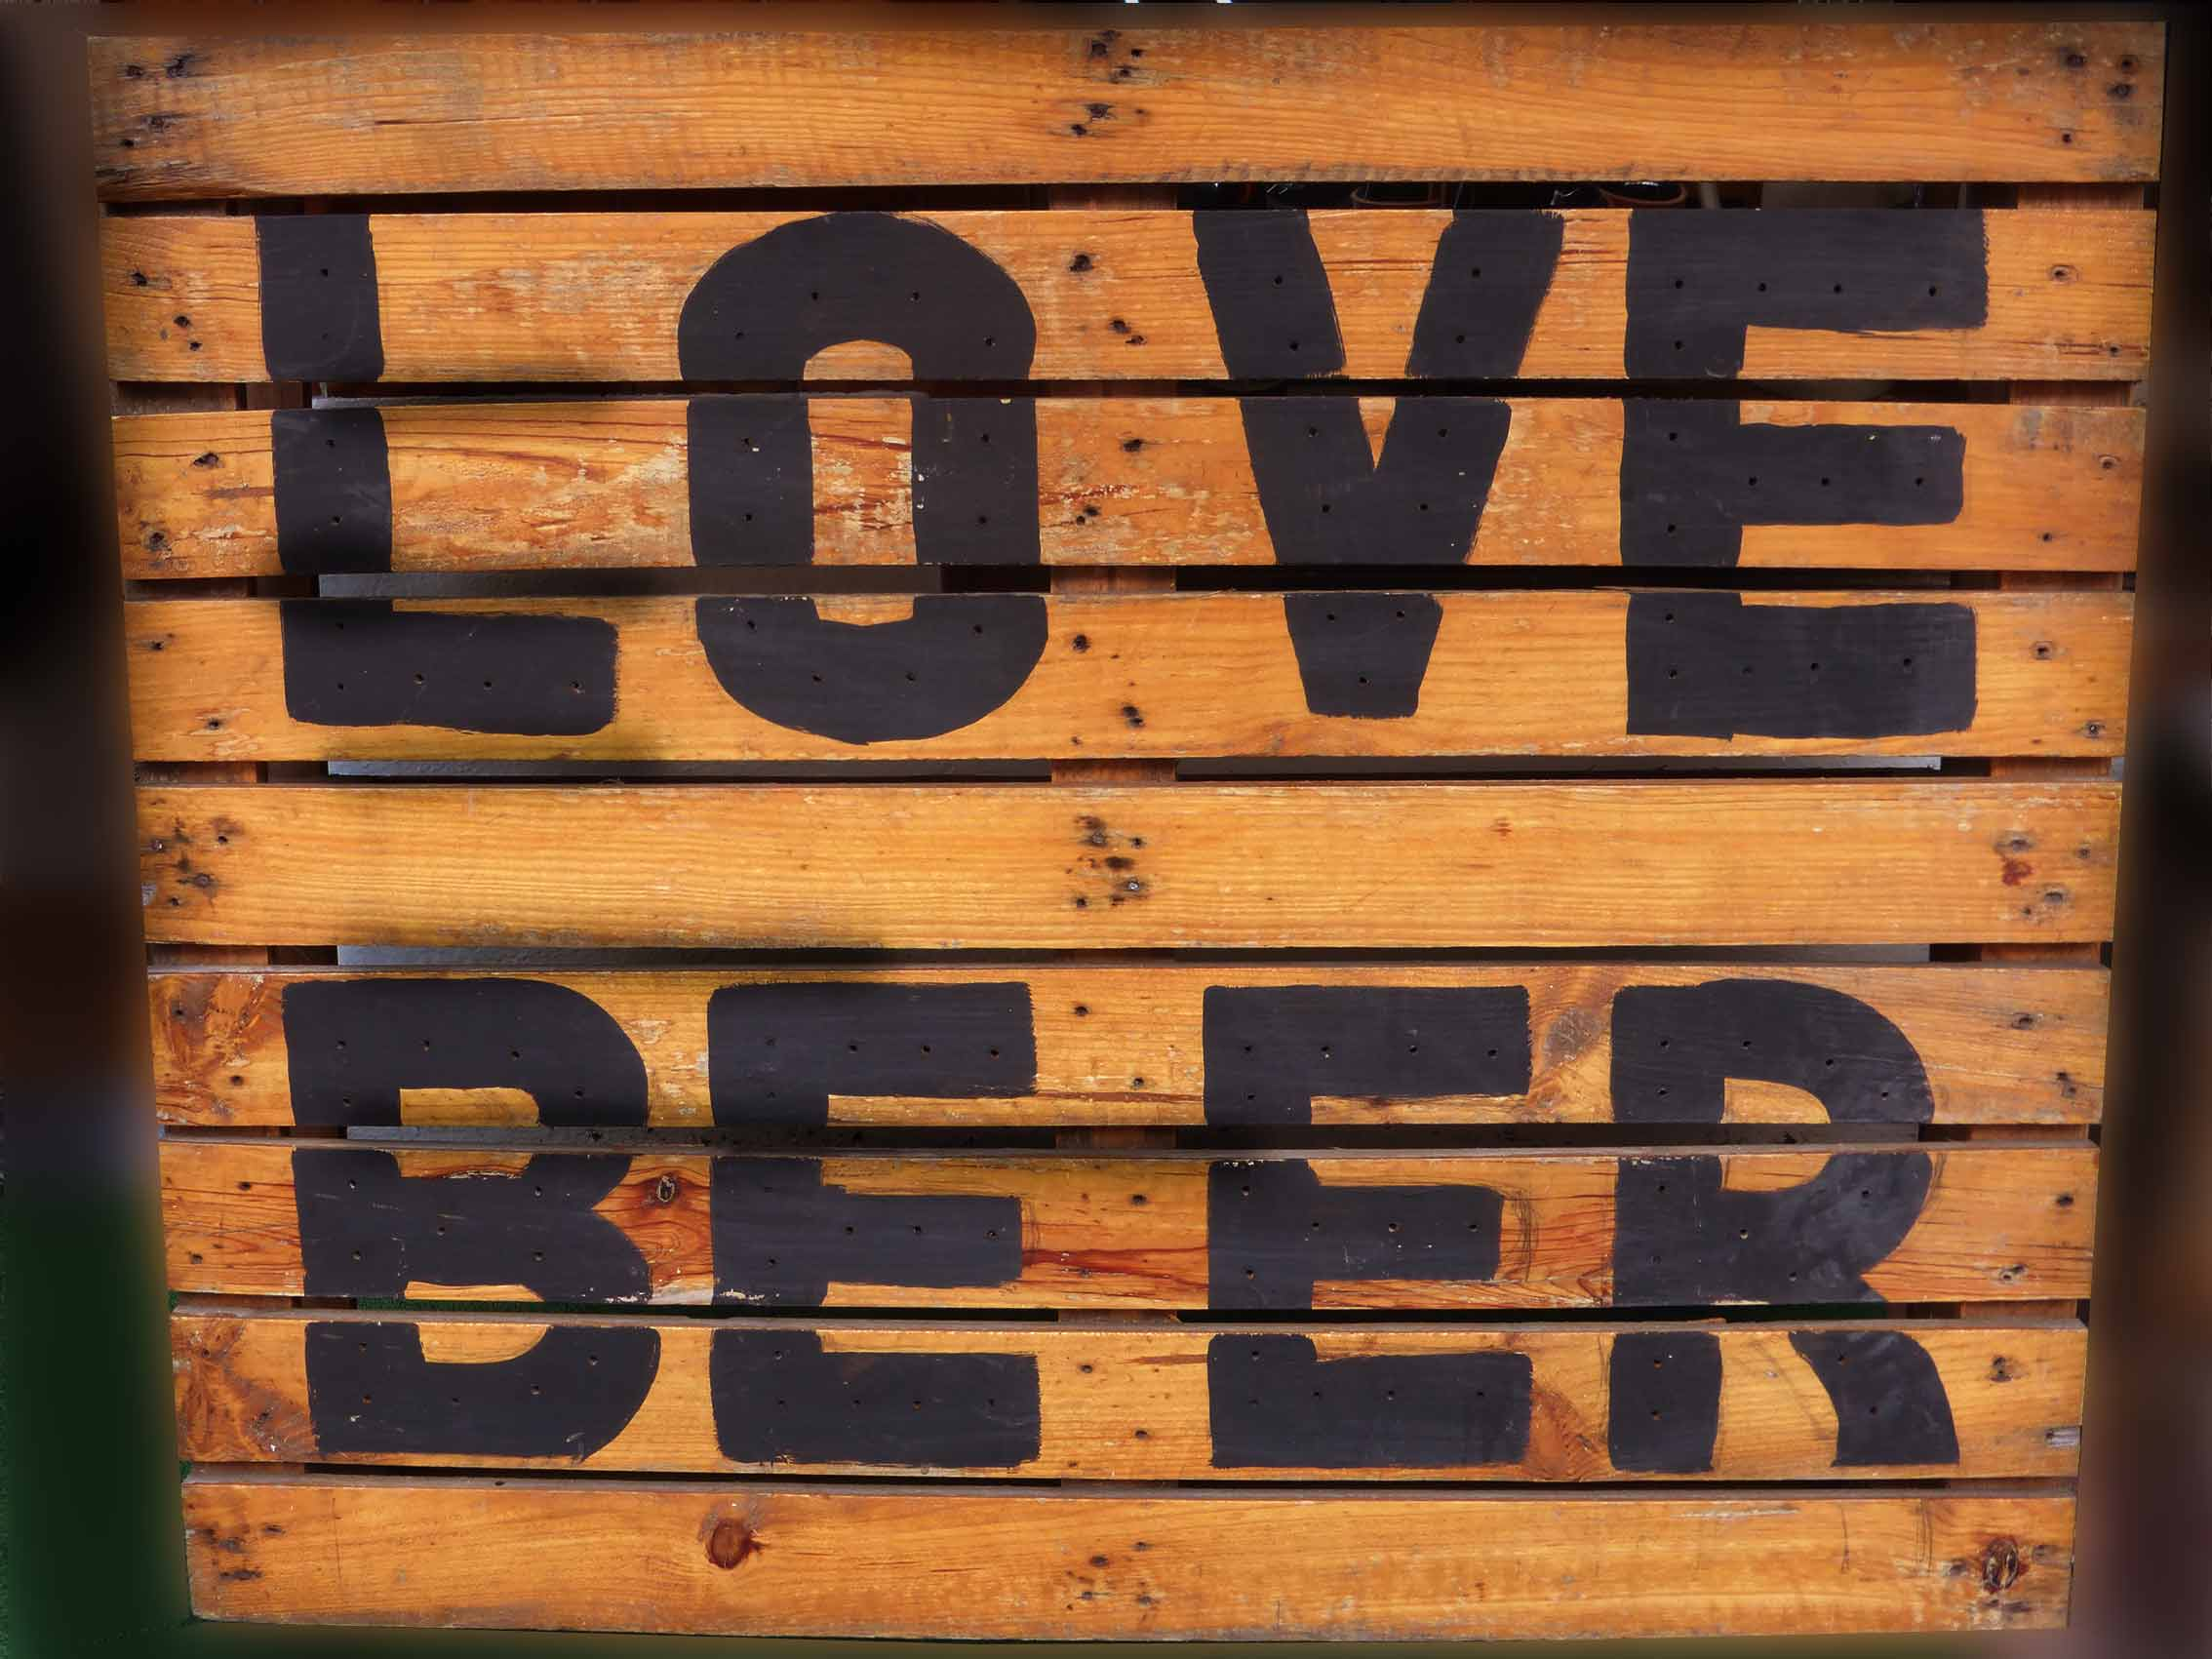 Love-Beer-web